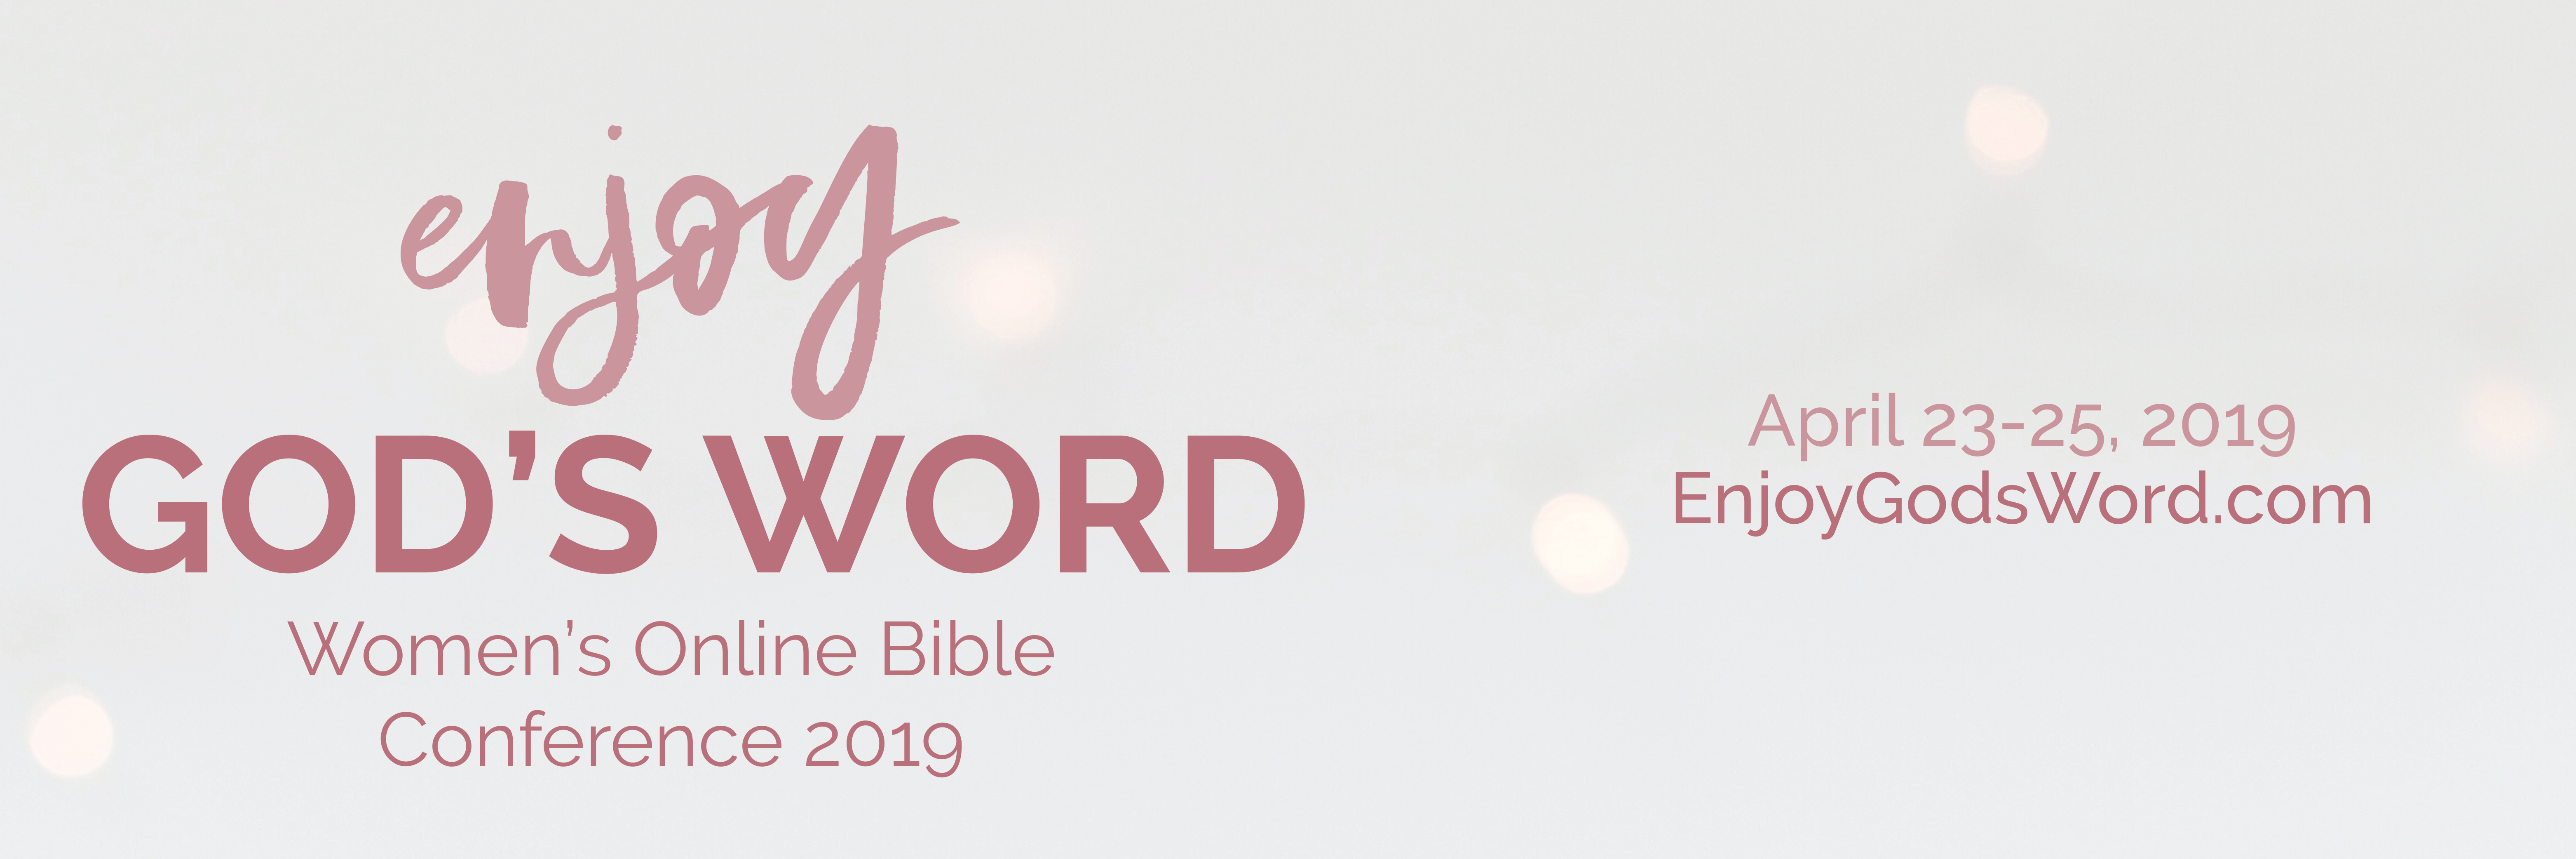 ENJOY GOD'S WORD — online Bible conference for women! Get all the details and your ticket at (affilaite) bit.ly/EGW2019!